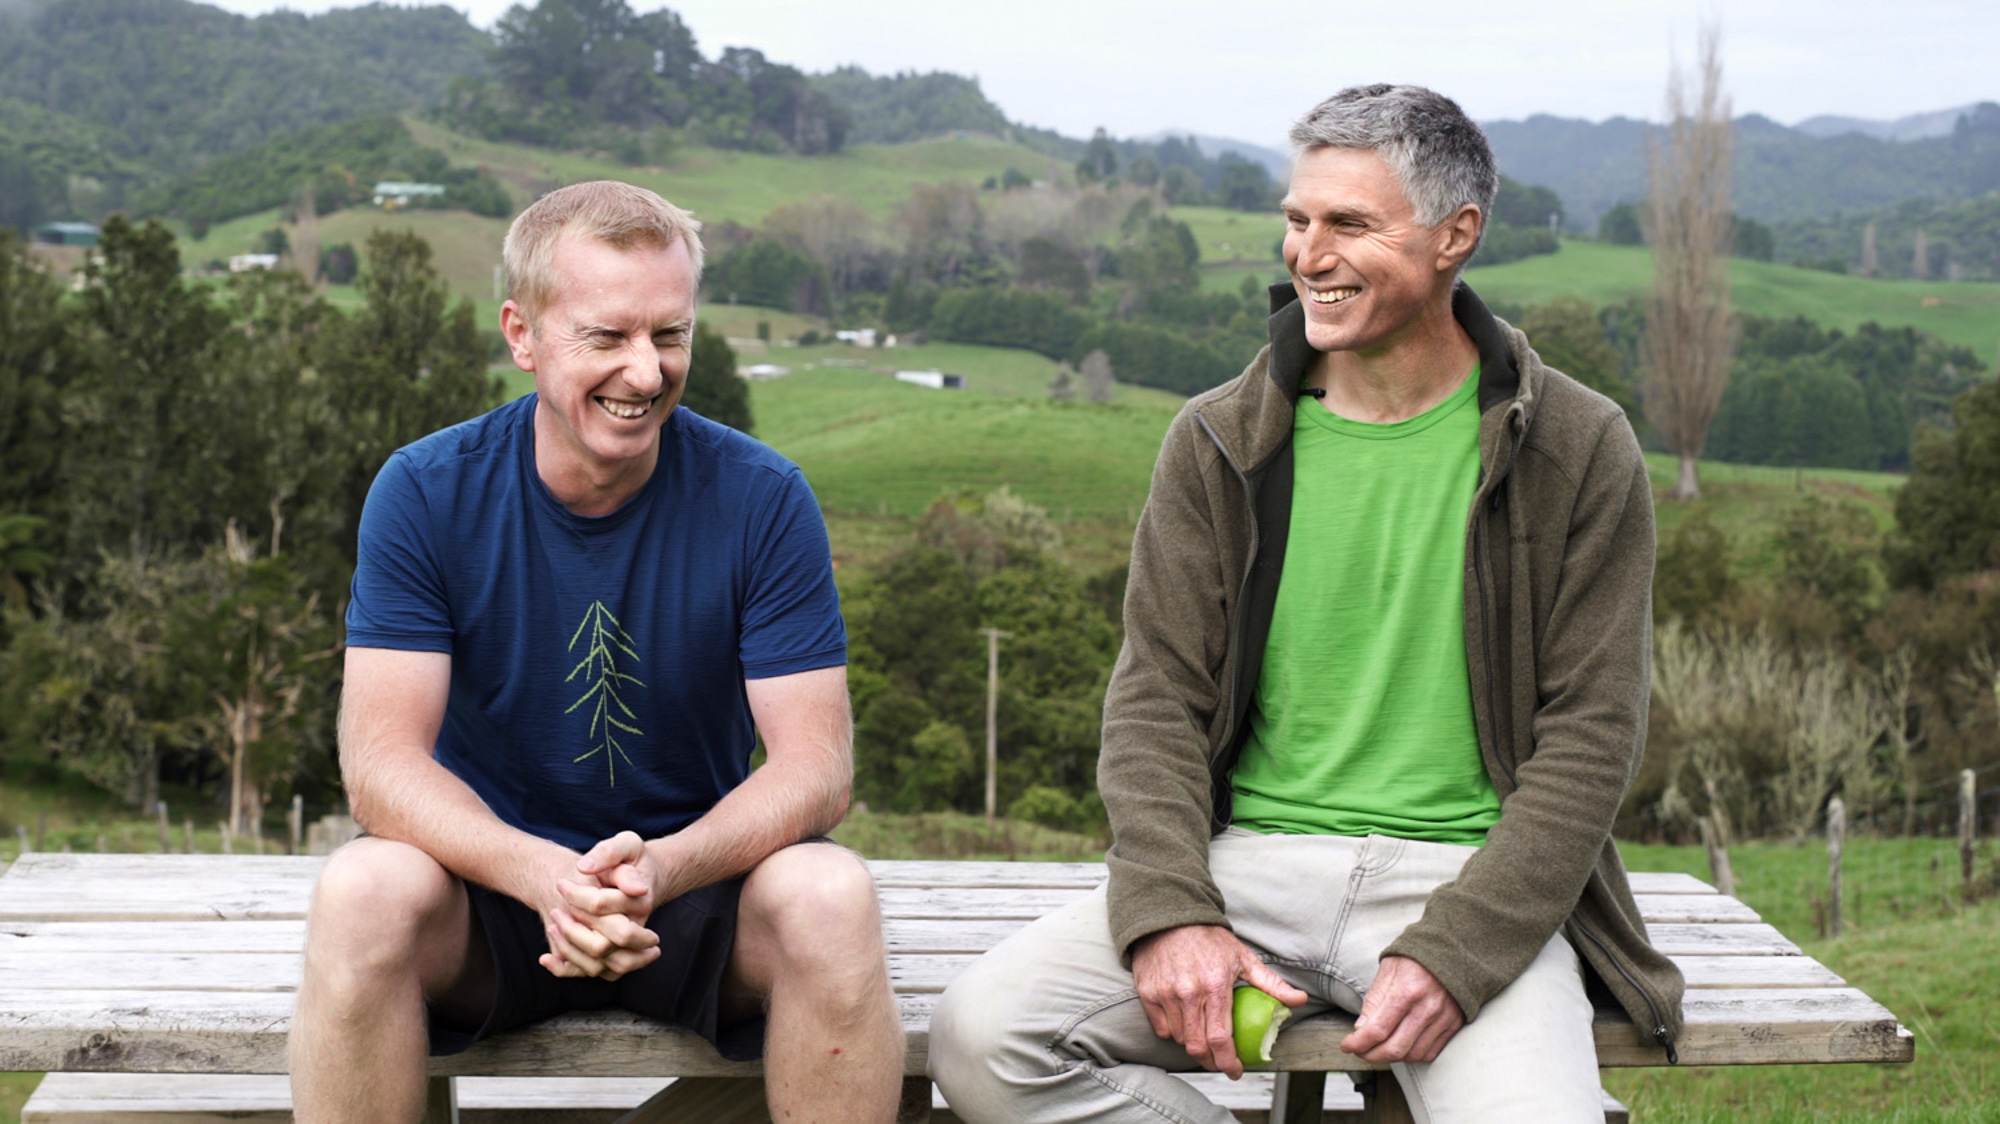 LuckieStrike_KeyPub - Mike & Dave in Waitomo 2.jpg